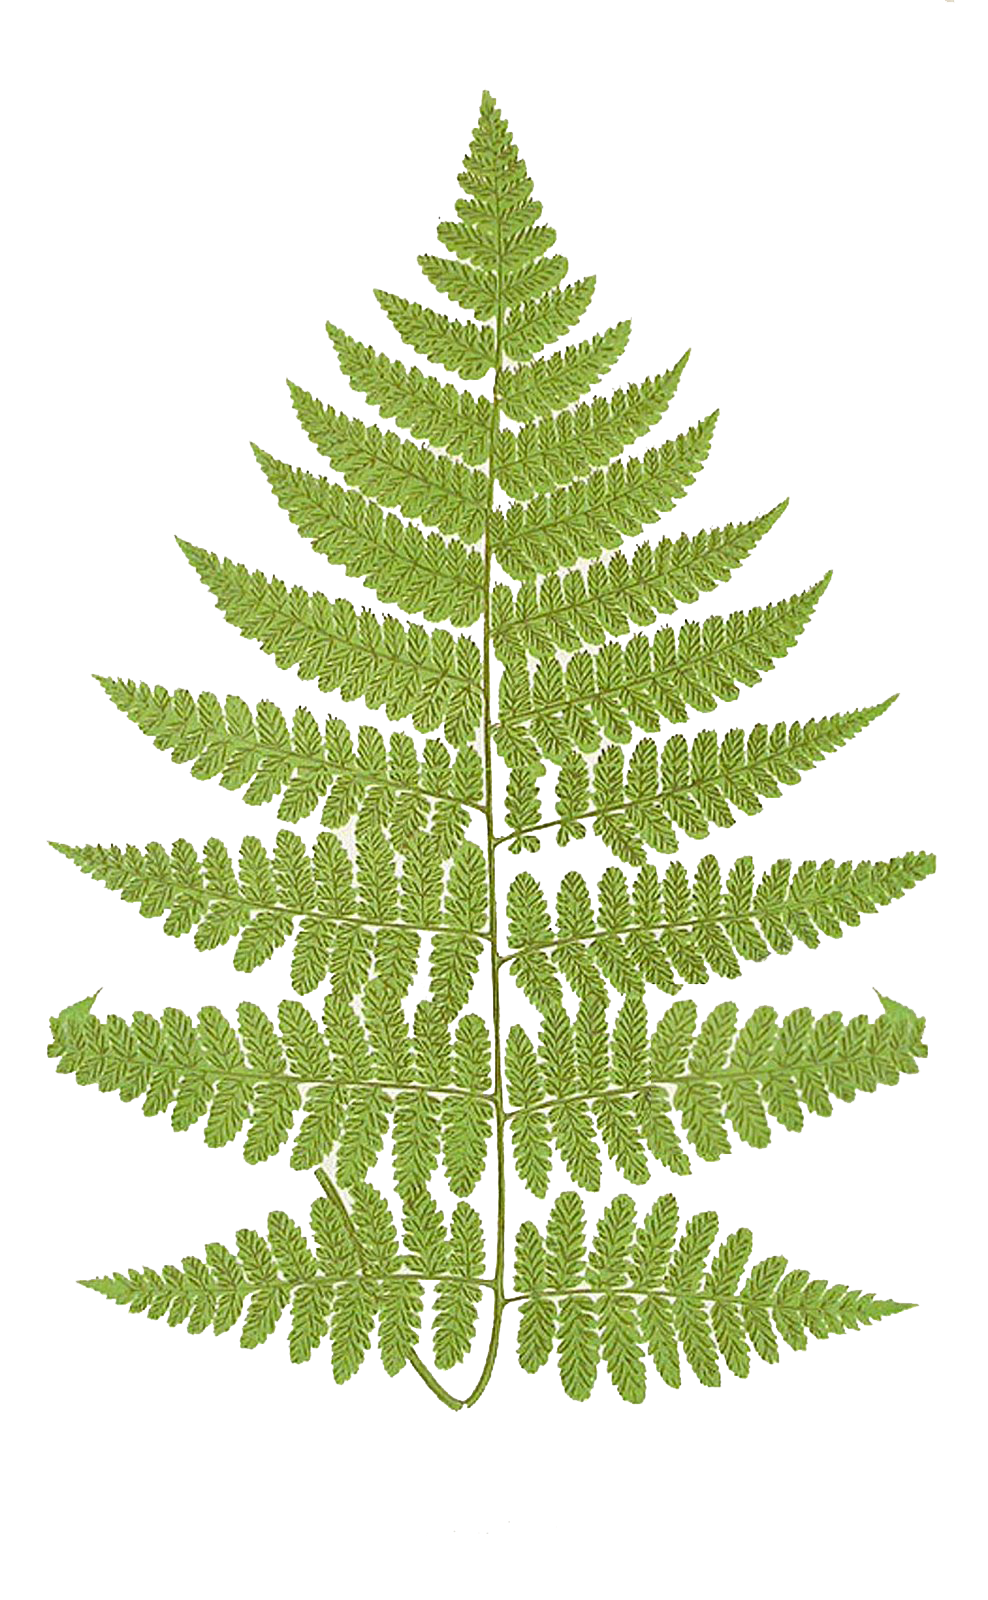 Fern clipart horsetail. Leaping frog designs frond